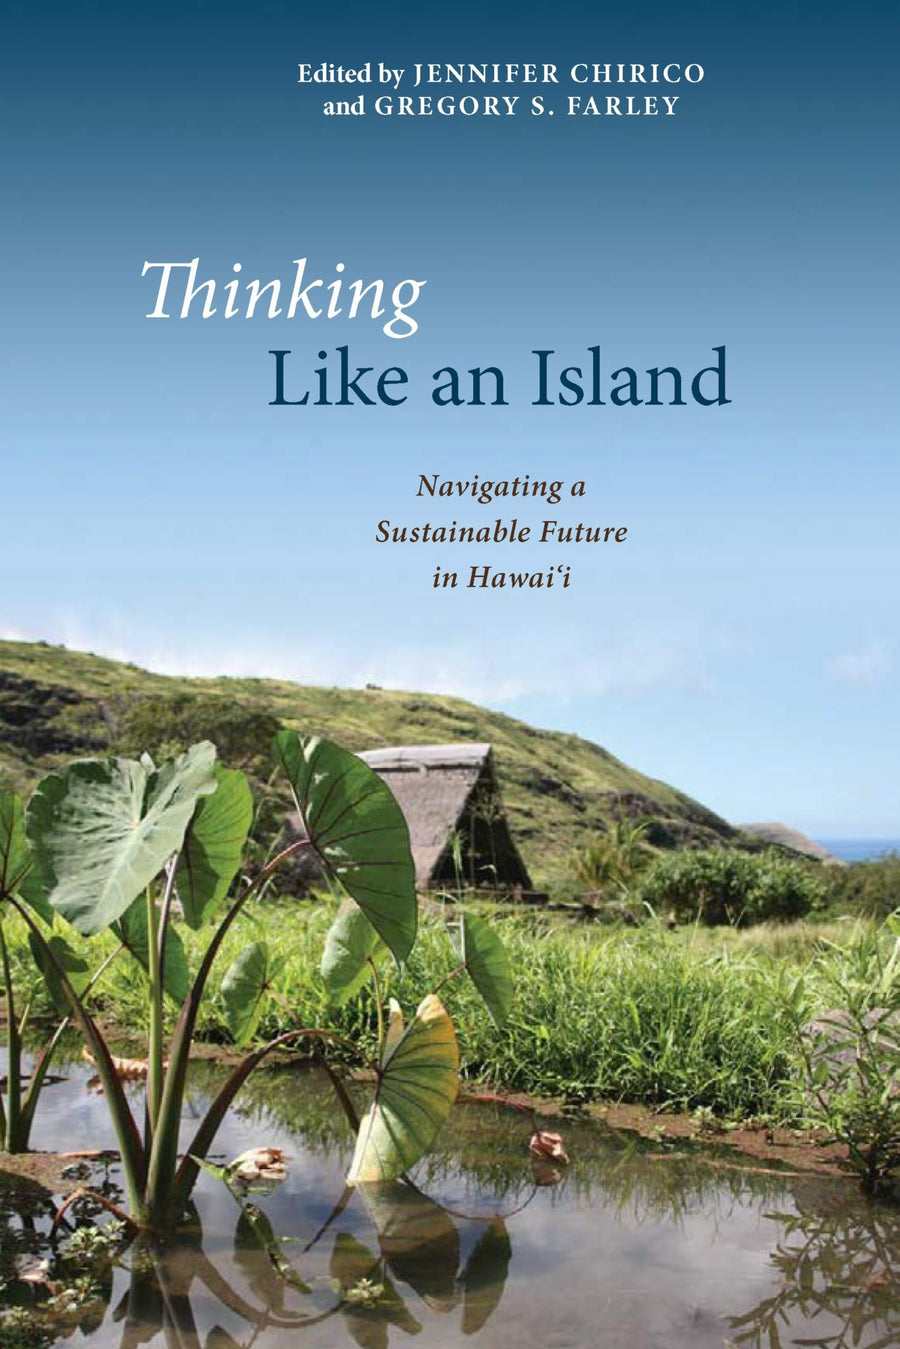 Thinking Like an Island: Navigating a Sustainable Future in Hawaiʻi